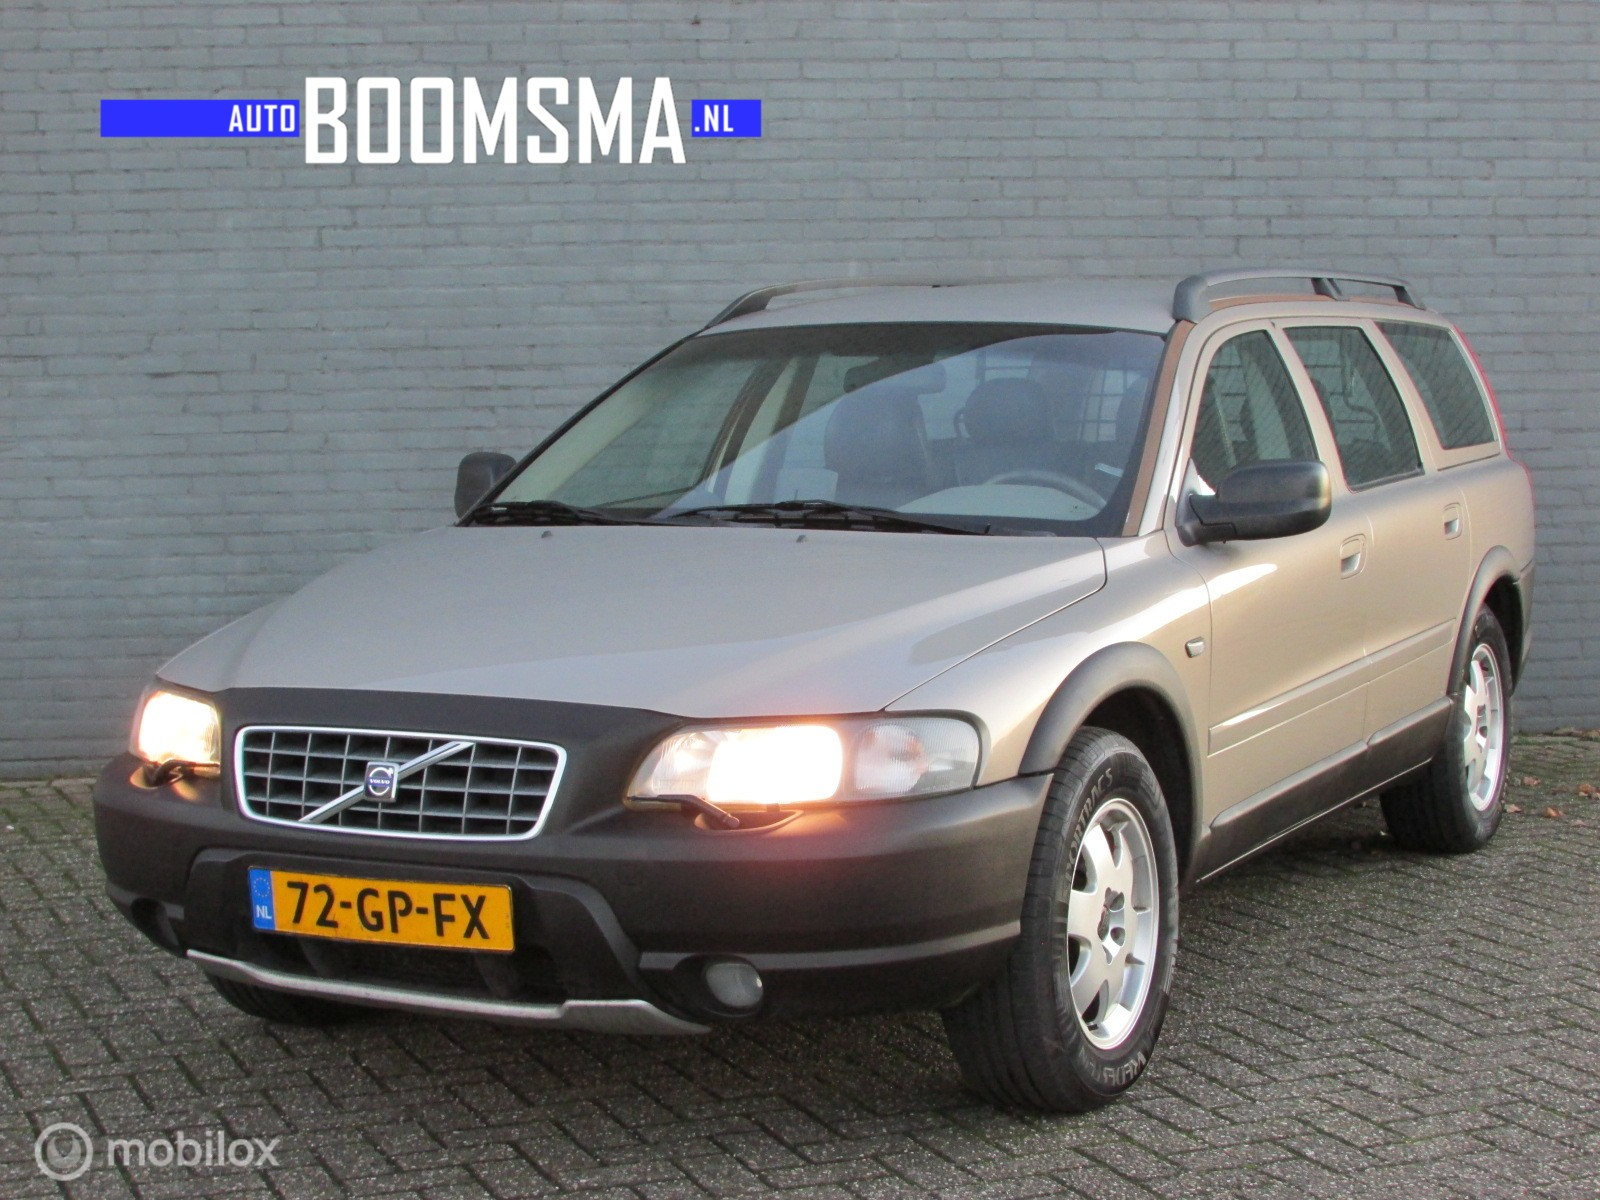 Volvo XC70 Cross Country 2.4 T 200pk Geartronic Youngtimer